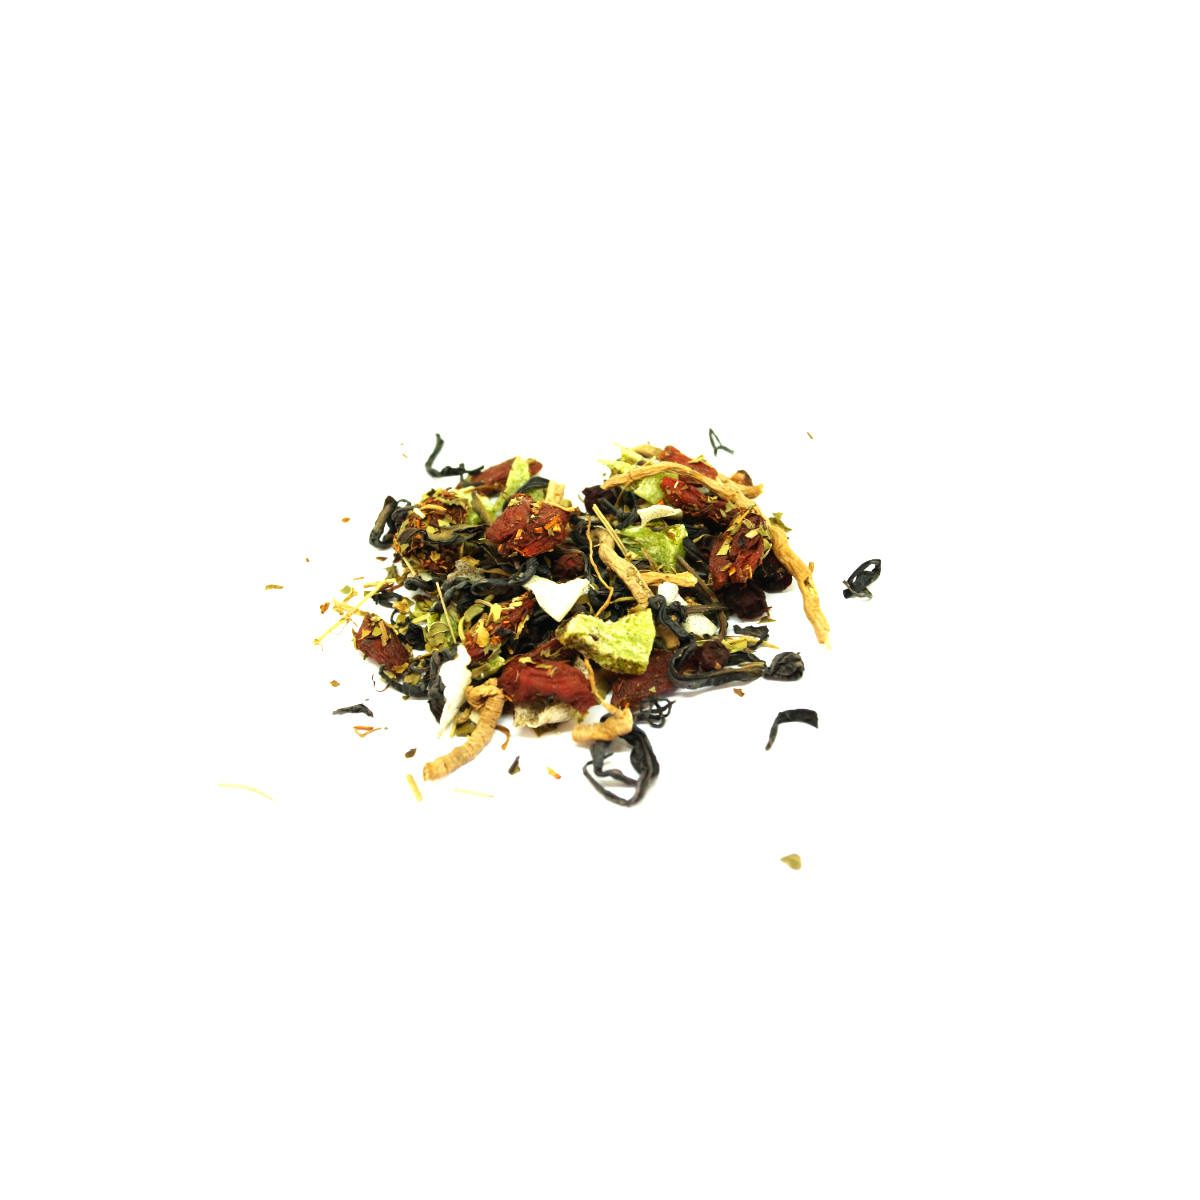 Cup of Ambition Tea We also added the fruit of Kiwi to give it a great flavorful taste combined with Coconut to round out the earthy-ness of the Polygala.